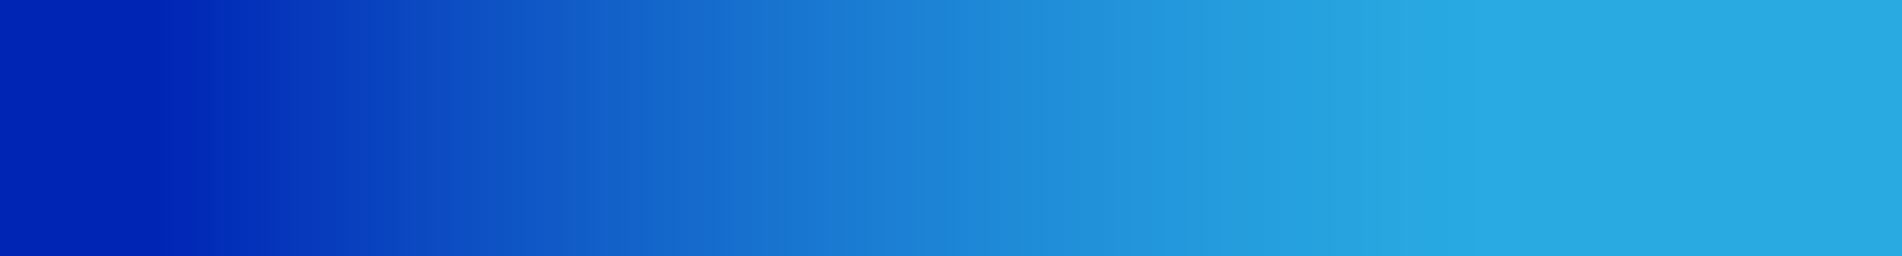 BLUE-GRADIENT-STRIP-2.png